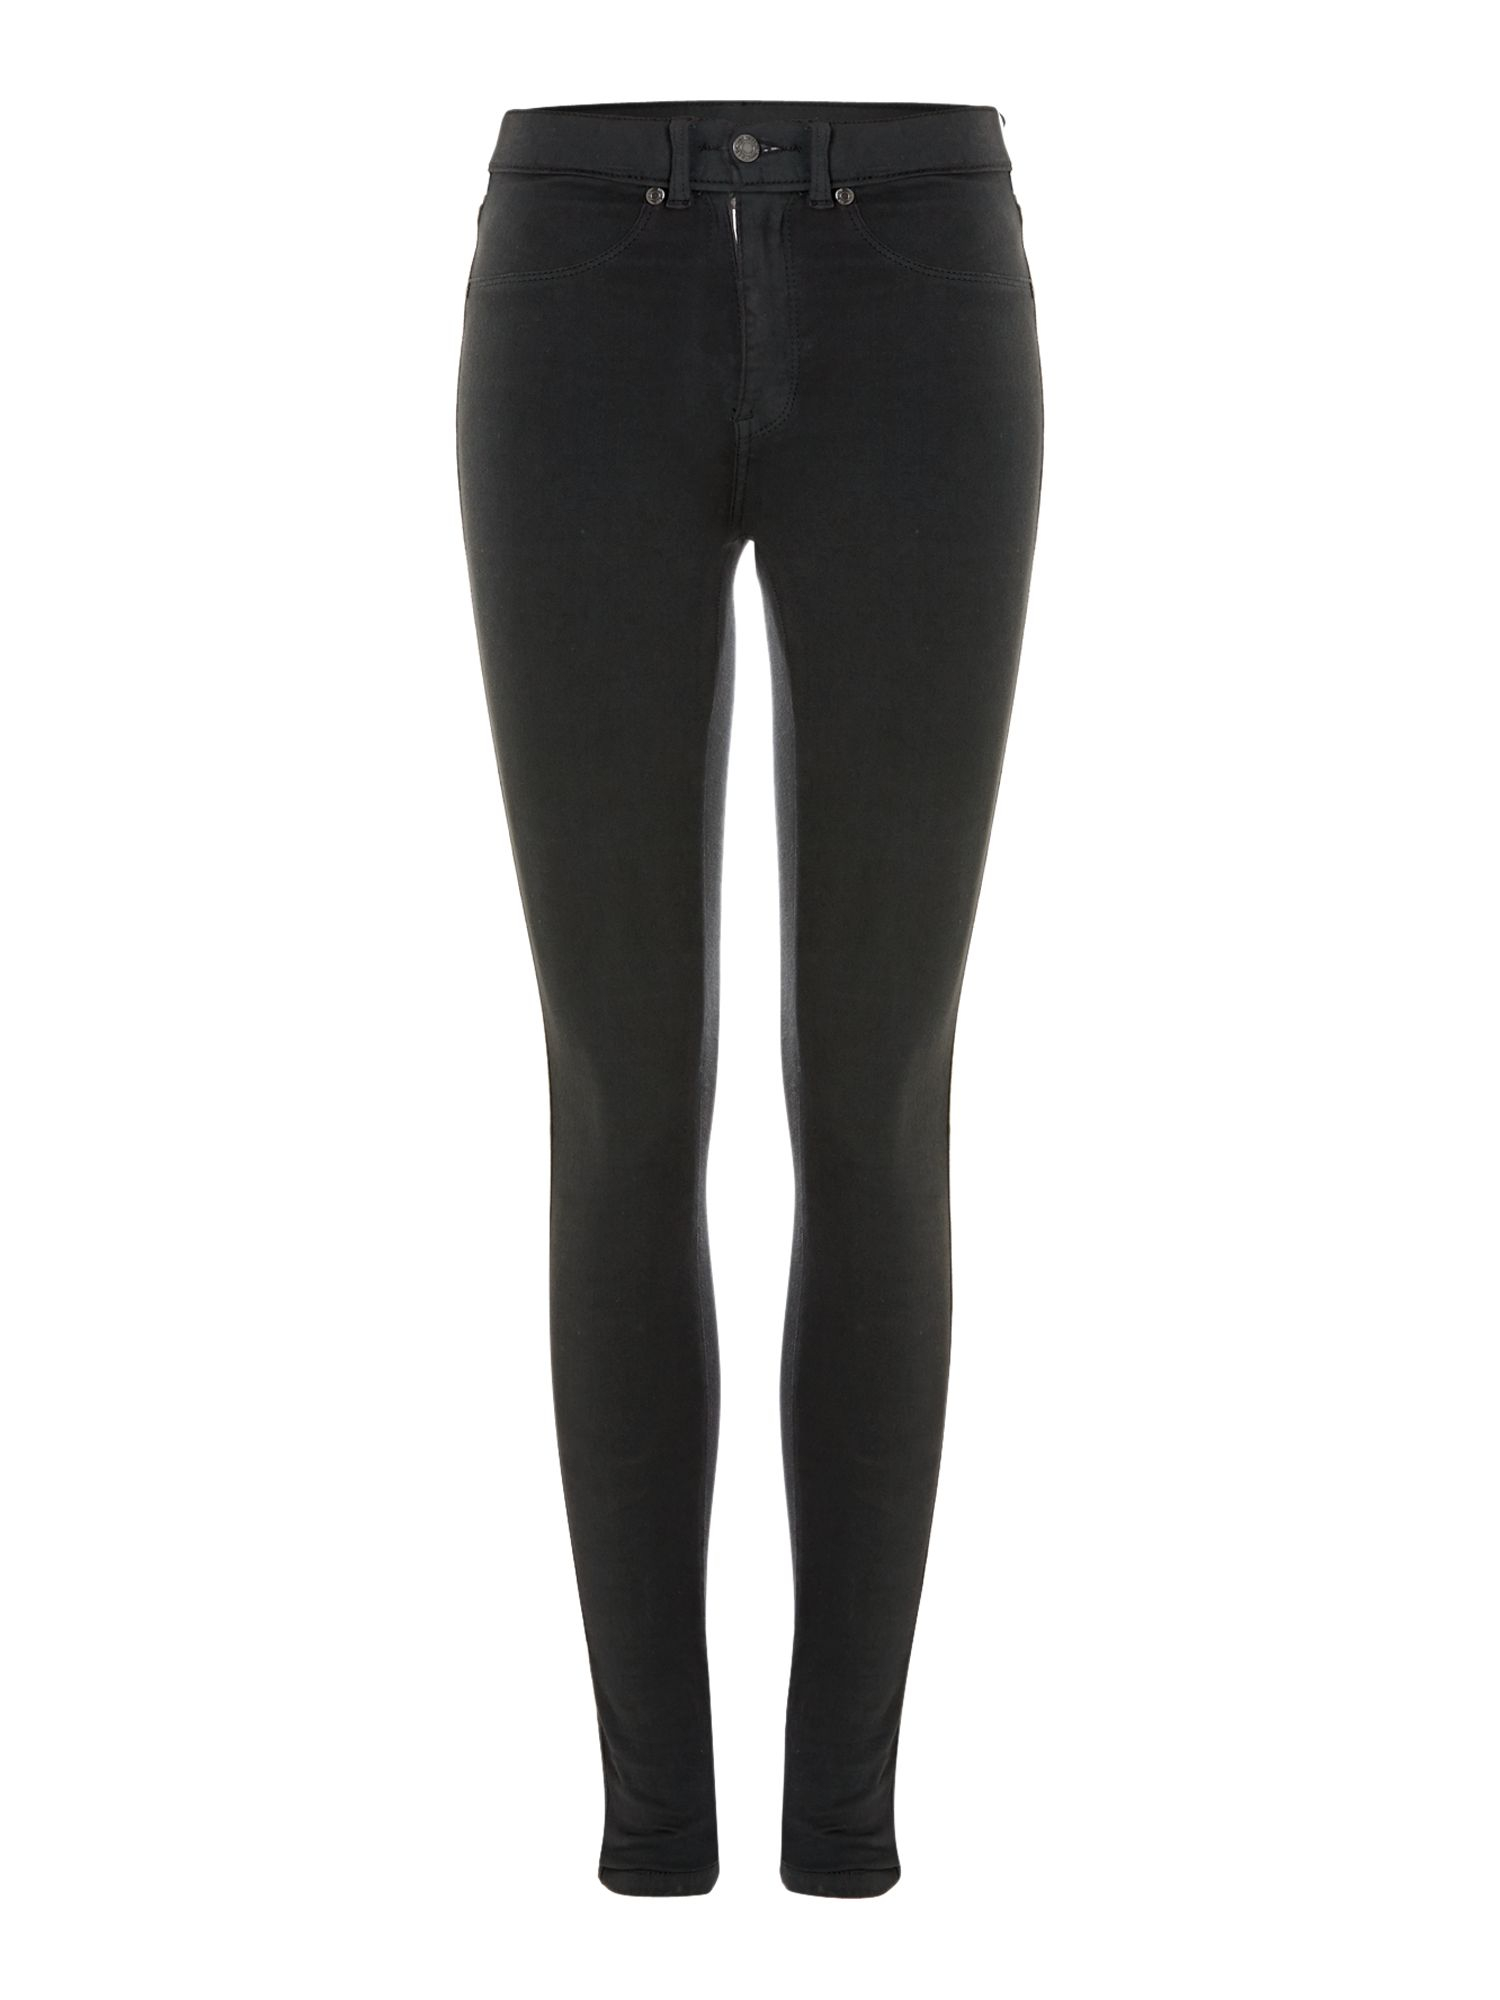 Dr. denim The Plenty High Waist Jeans in Black Coated in Black | Lyst